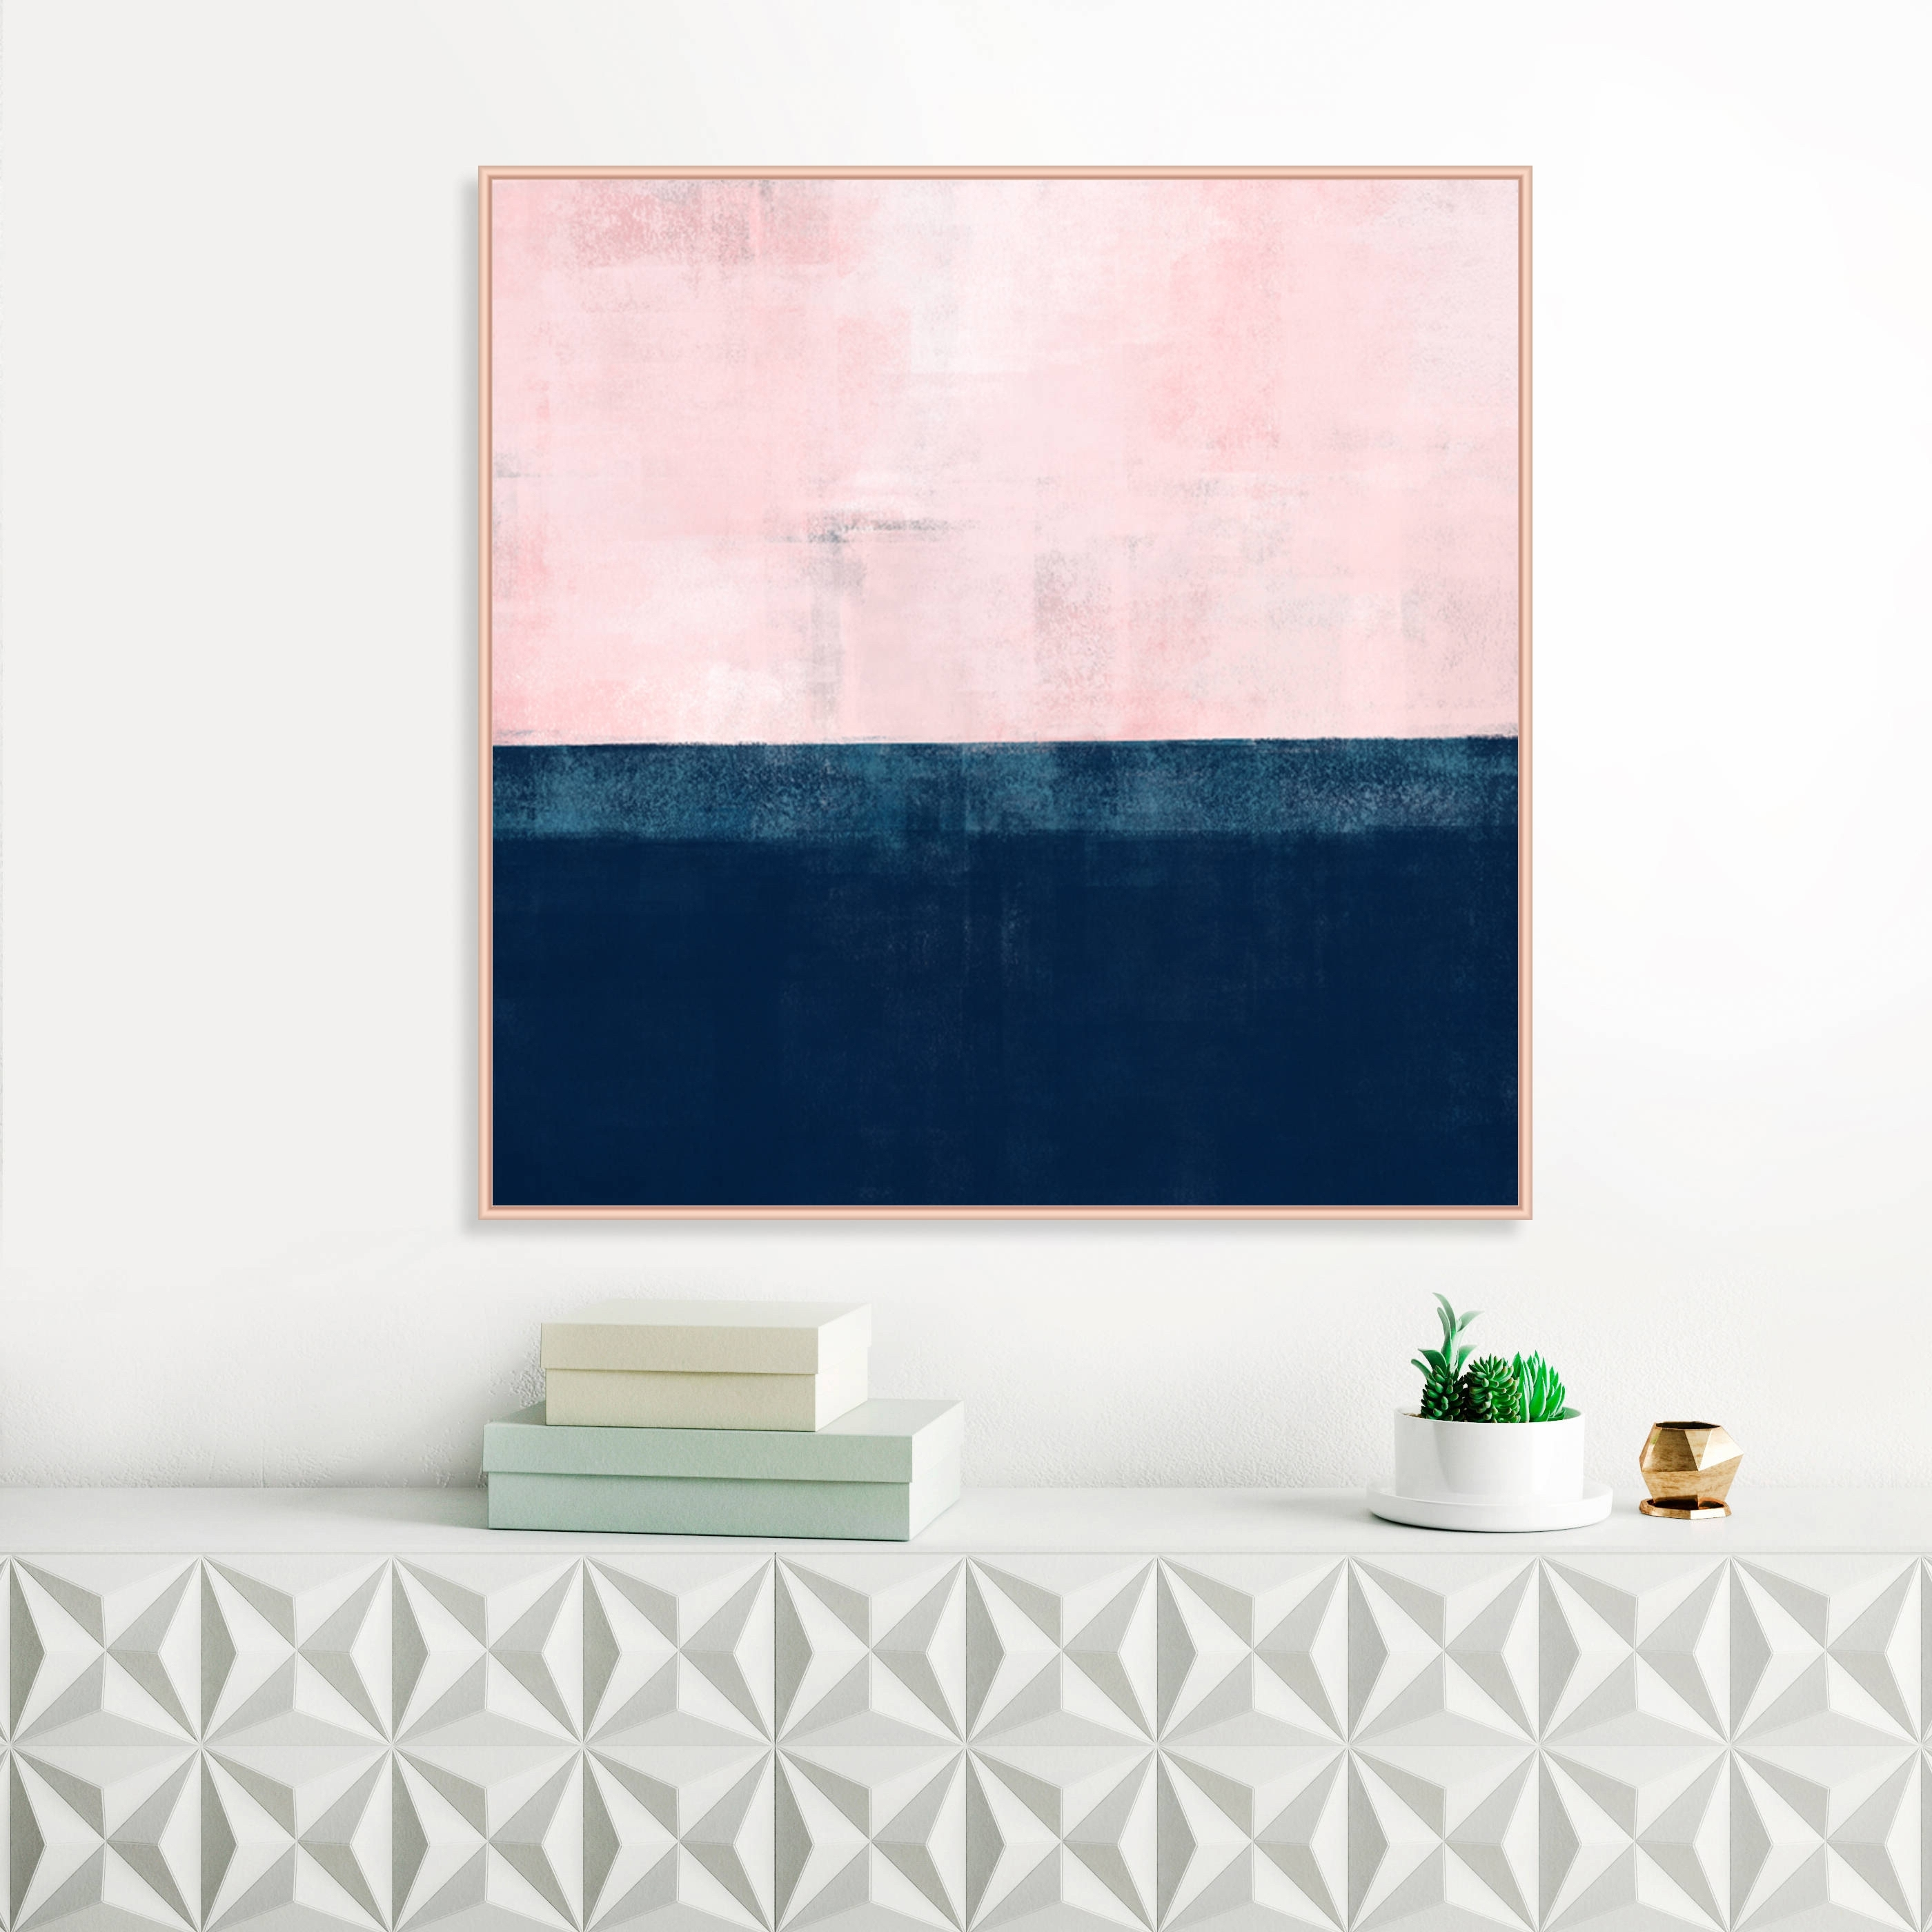 Pink Abstract Wall Art Pertaining To Well Known Pink And Navy Blue Abstract Art, Pink Wall Art, Pink Painting (View 8 of 15)